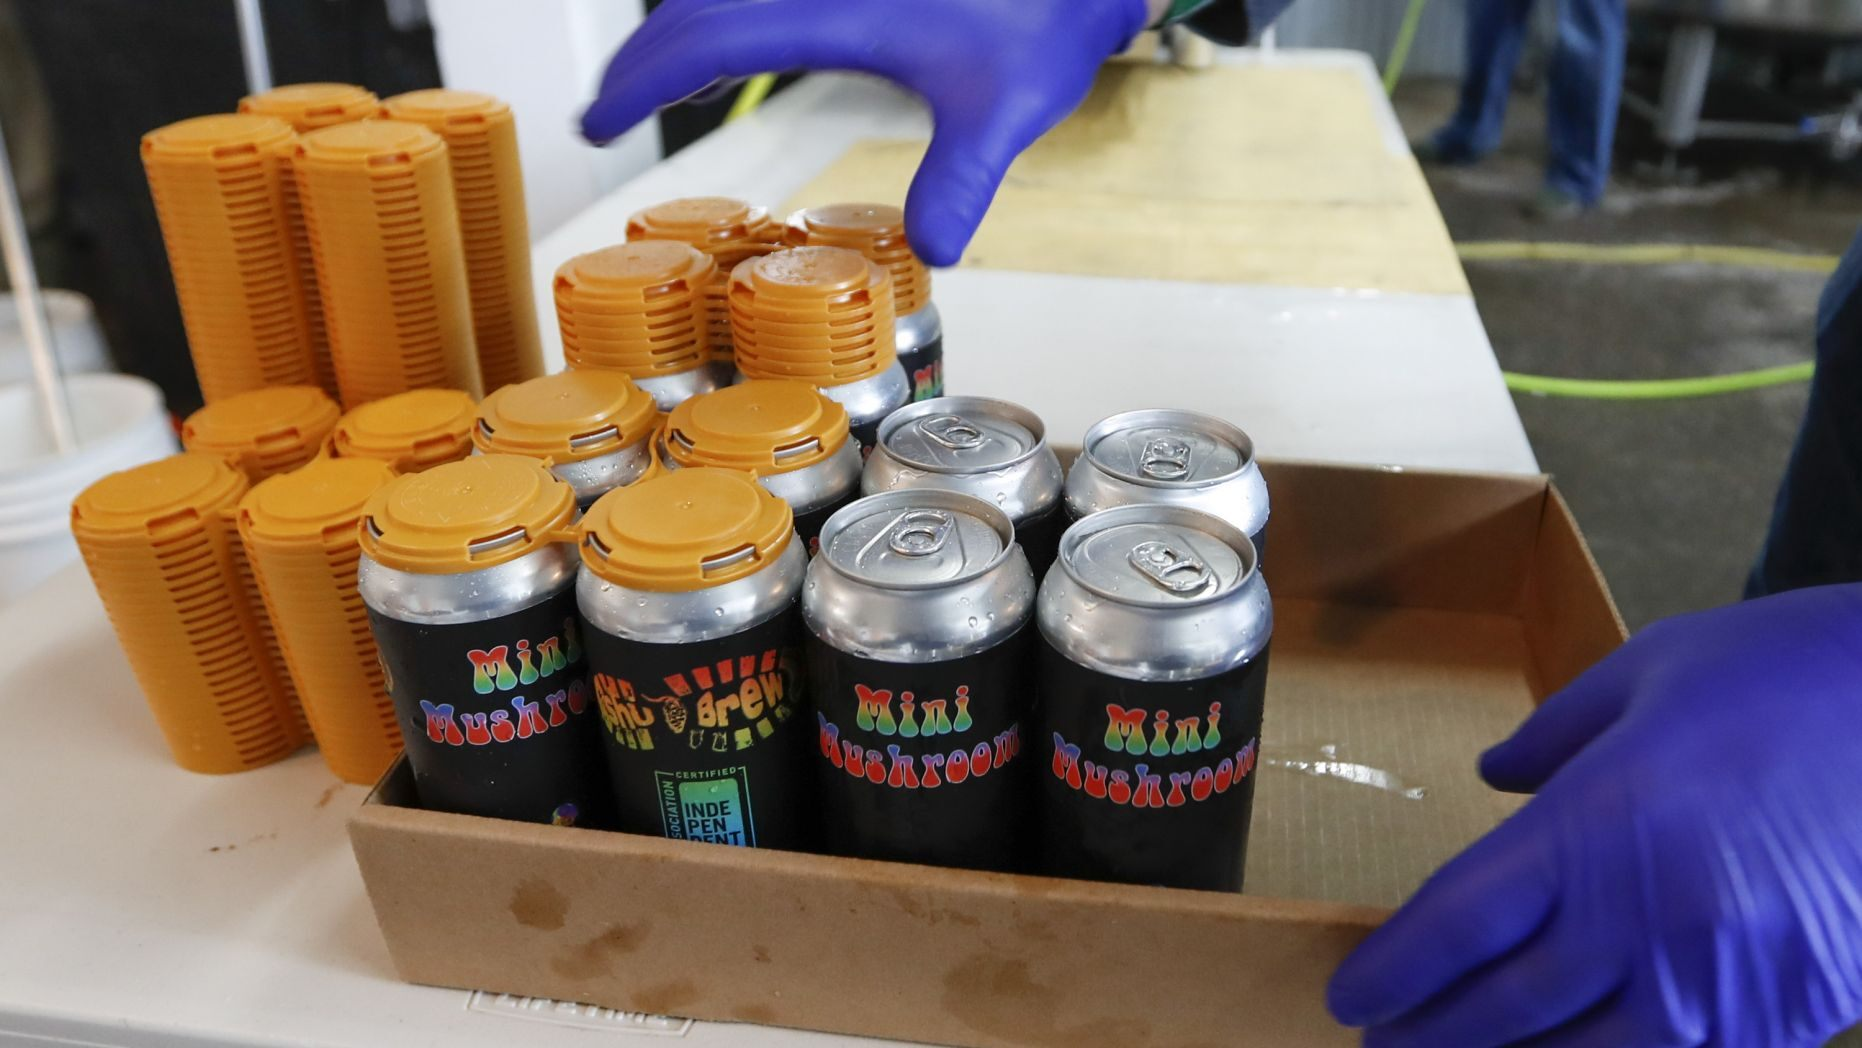 A worker puts four-pack covers on canned beers after they came off the filling conveyor at the ShuBrew craft brewery in Harmony, Pa on April 16.